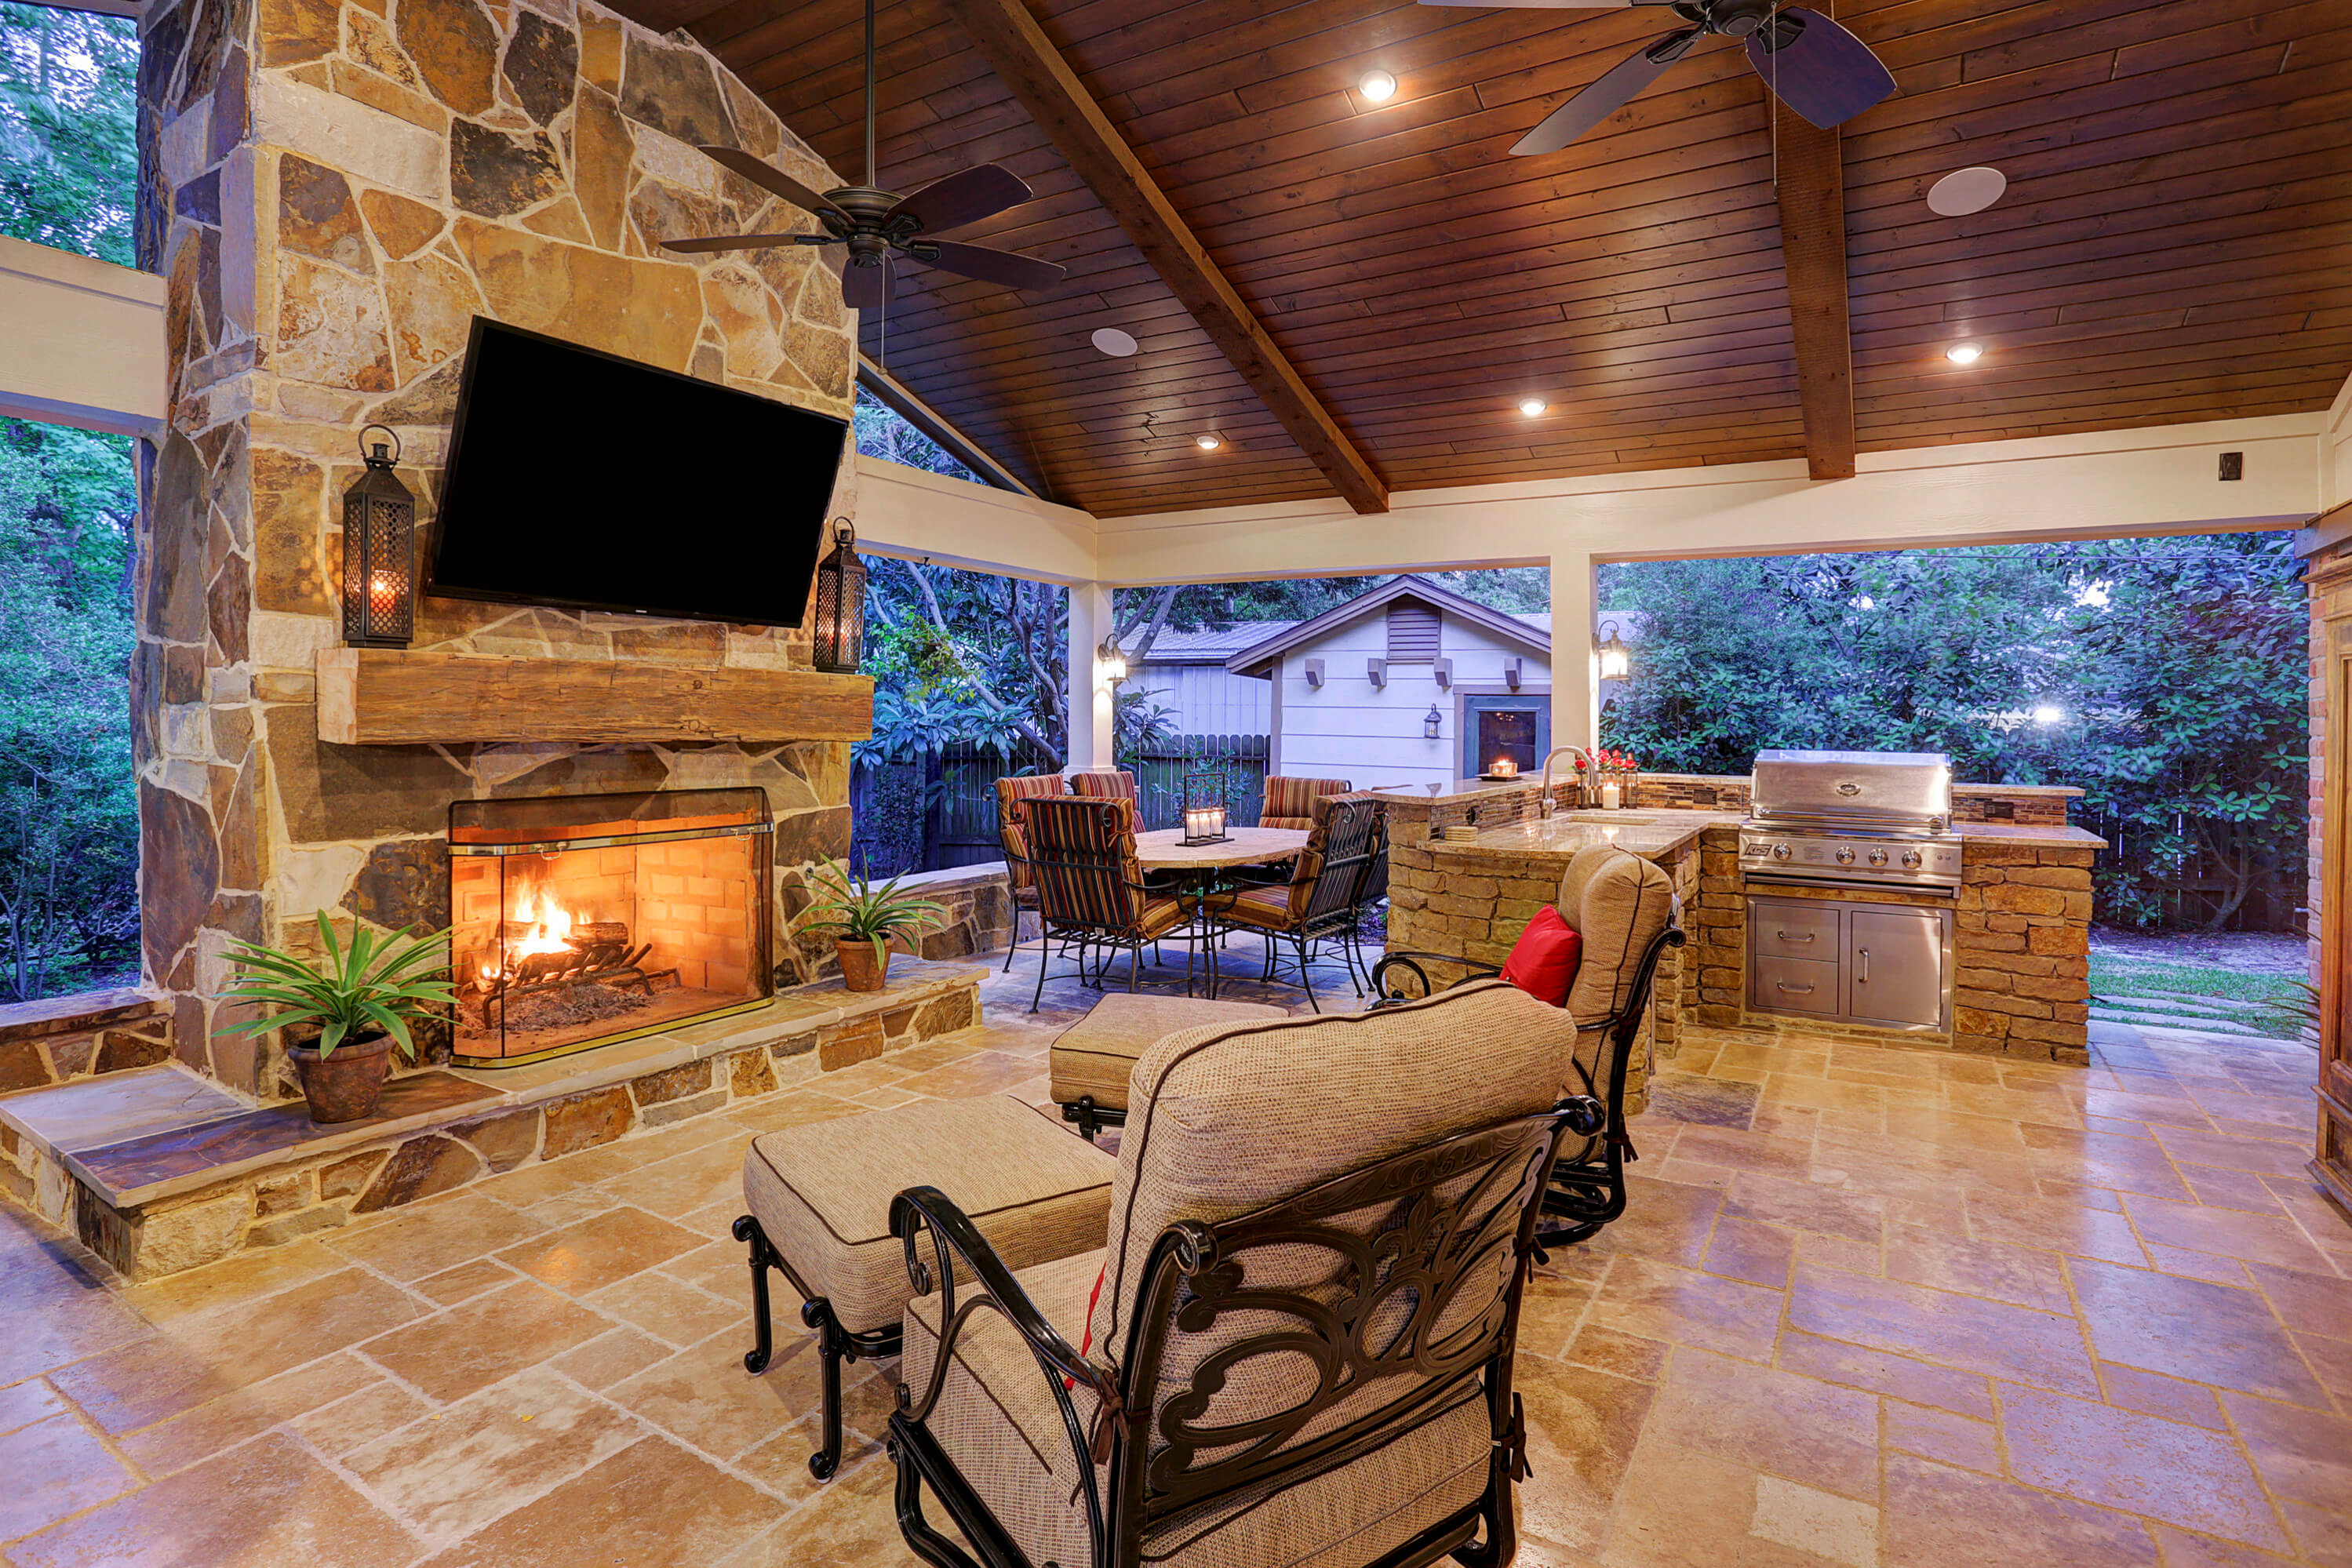 Outdoor Living in Briar Forest Area - Texas Custom Patios on Doobz Outdoor Living id=42760